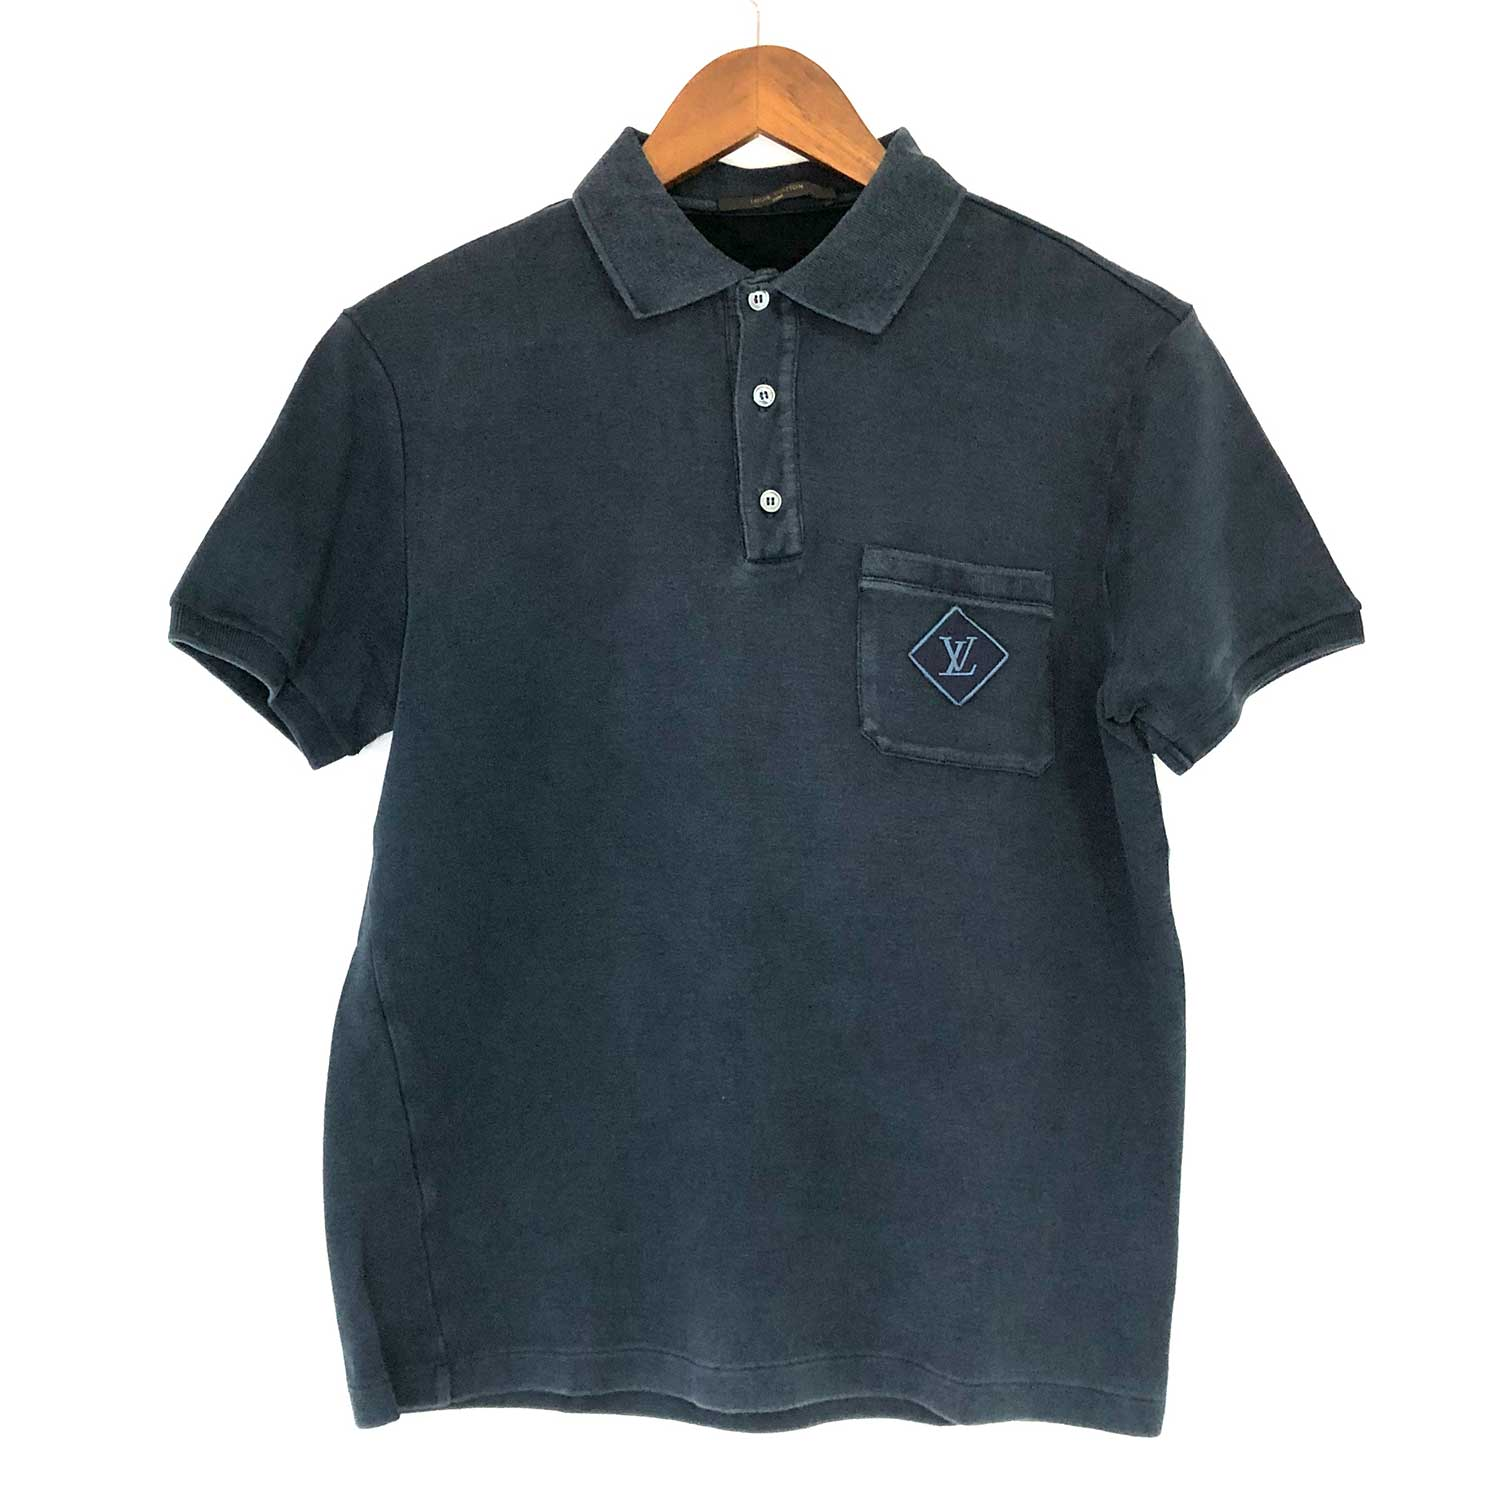 Camisa Polo Louis Vuitton Marinho